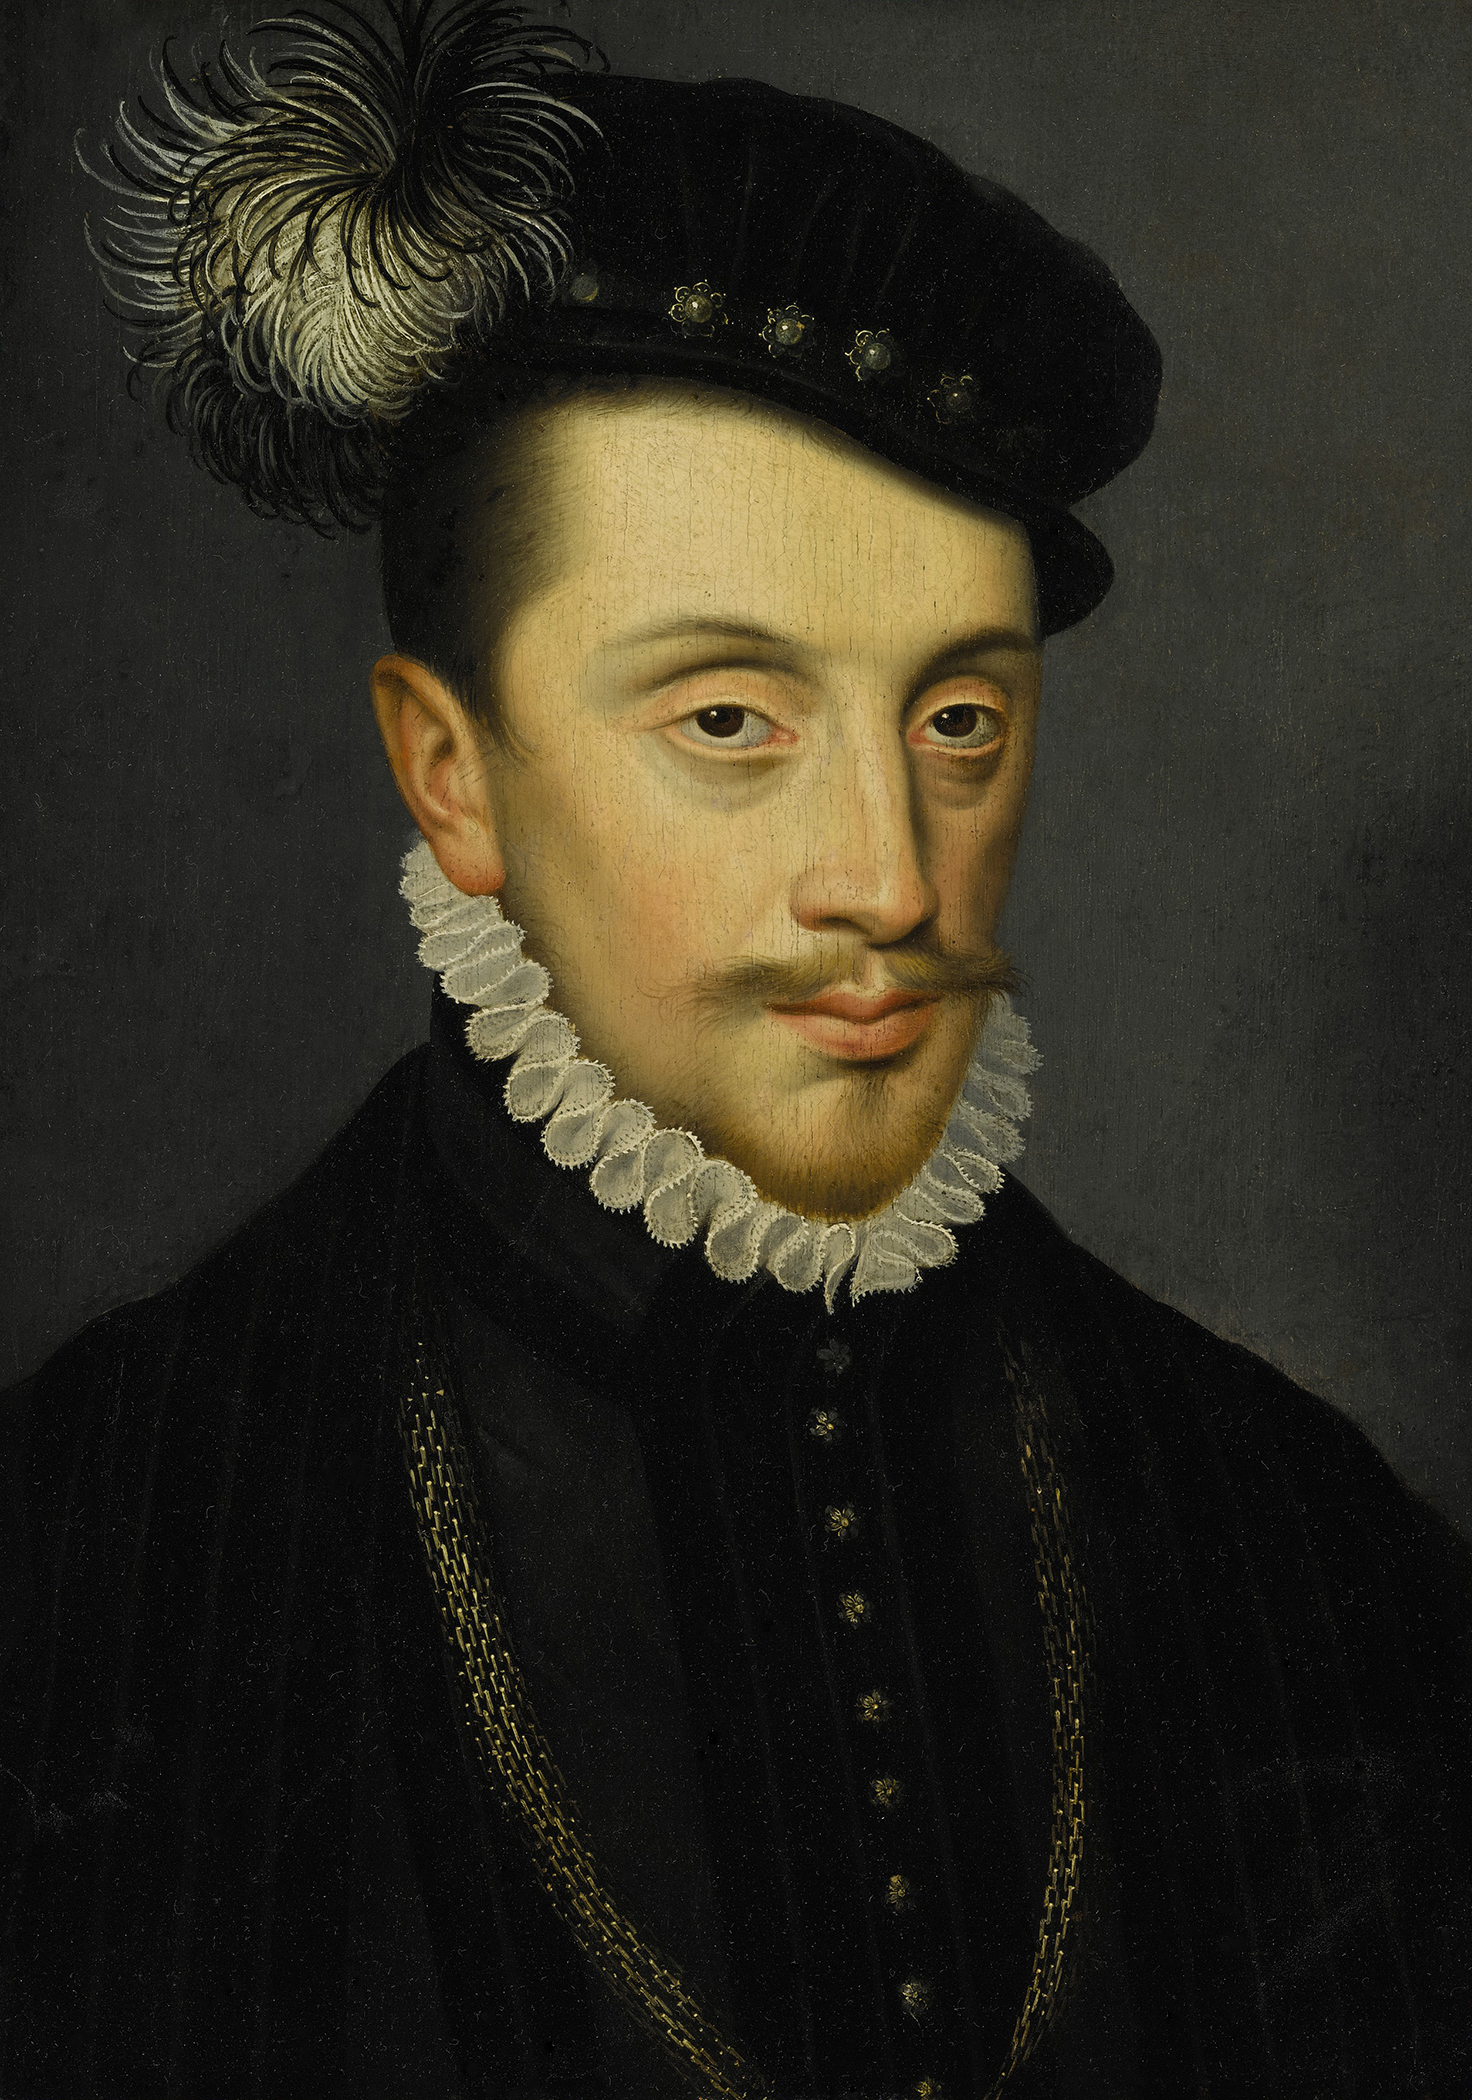 Portrait of Charles III (1543-1608), Duke of Lorraine and Bar, Marquis of Pont-à-Mousson (1545-1608), Regency (1545-1559), 1572 | Portraits of Kings